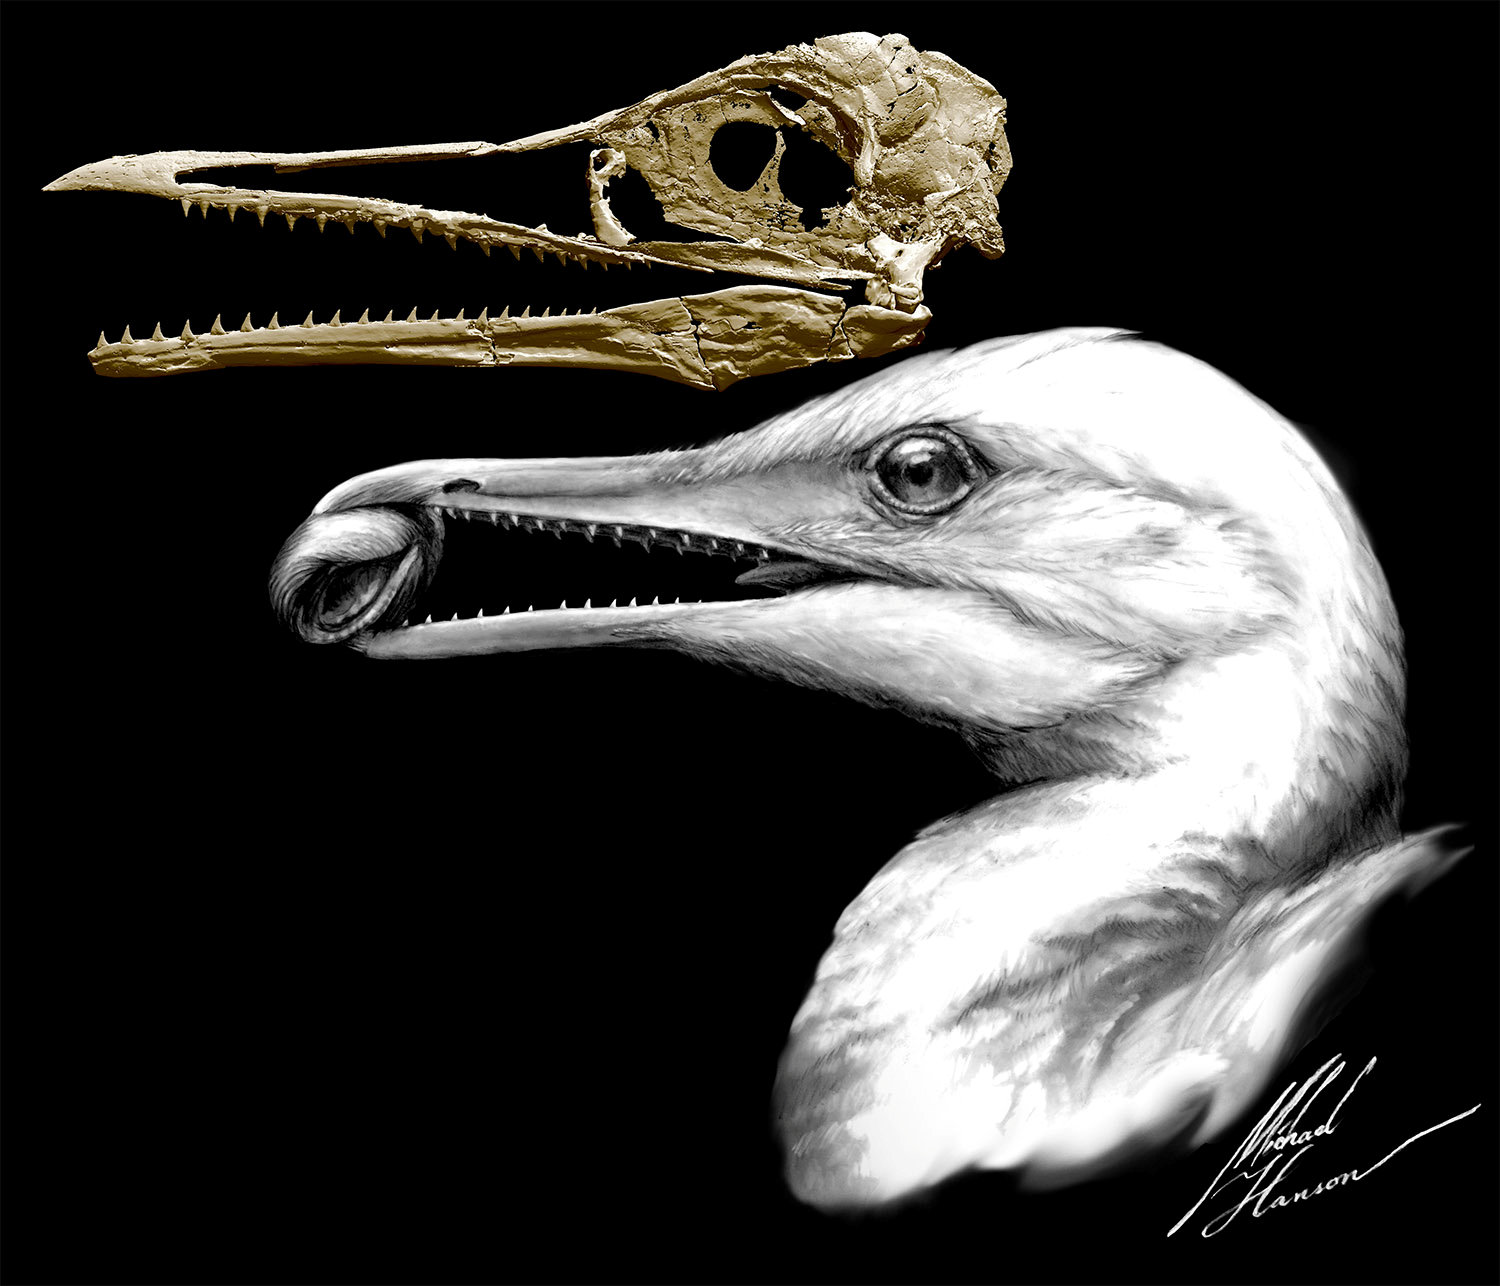 CT-scan-based skull restoration and life reconstruction of the toothed stem bird Ichthyornis dispar, a primitive seabird that prospered about 85 million years ago along the warm, shallow inland sea that once split North America, is shown in this image released on May 2, 2018. Credit: Michael Hanson and Bhart-Anjan S. Bhullar/Handout via Reuters